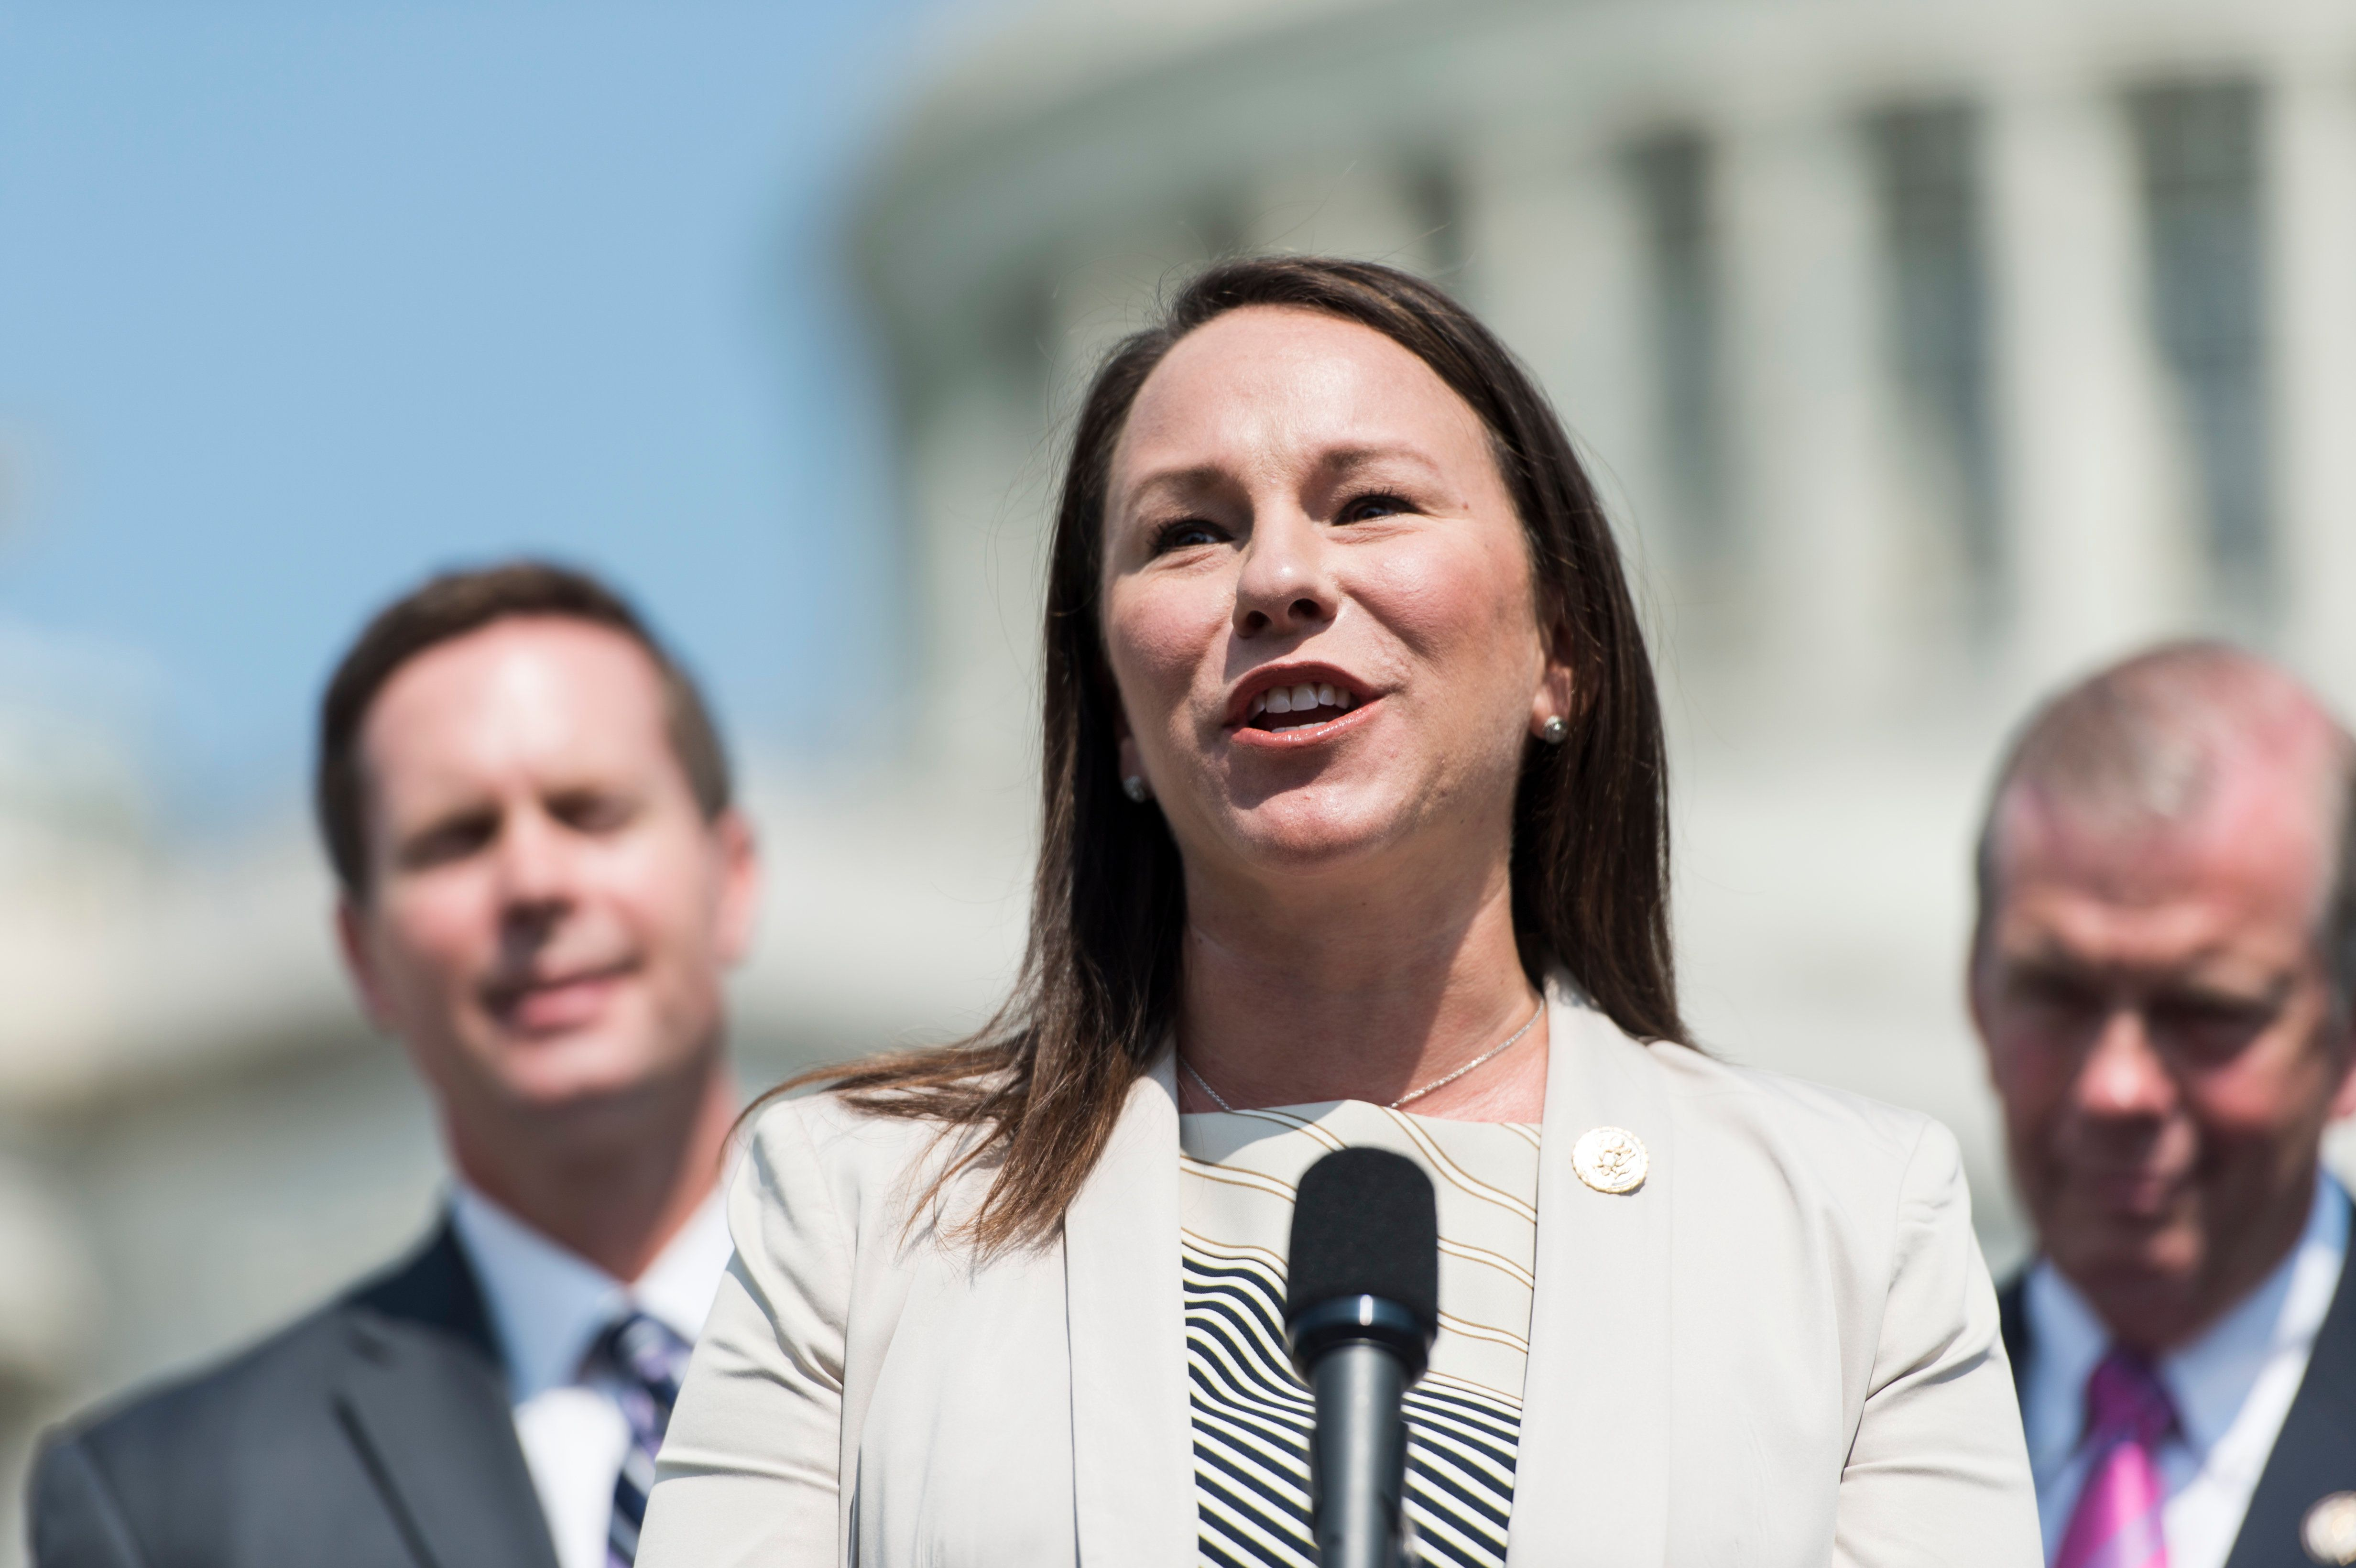 UNITED STATES - JULY 30: Rep. Martha Roby, R-Ala., speaks during the House Republicans' news conference on 'Solutions to Empower Women At Work & At Home' on Wednesday, July 30, 2014. (Photo By Bill Clark/CQ Roll Call)